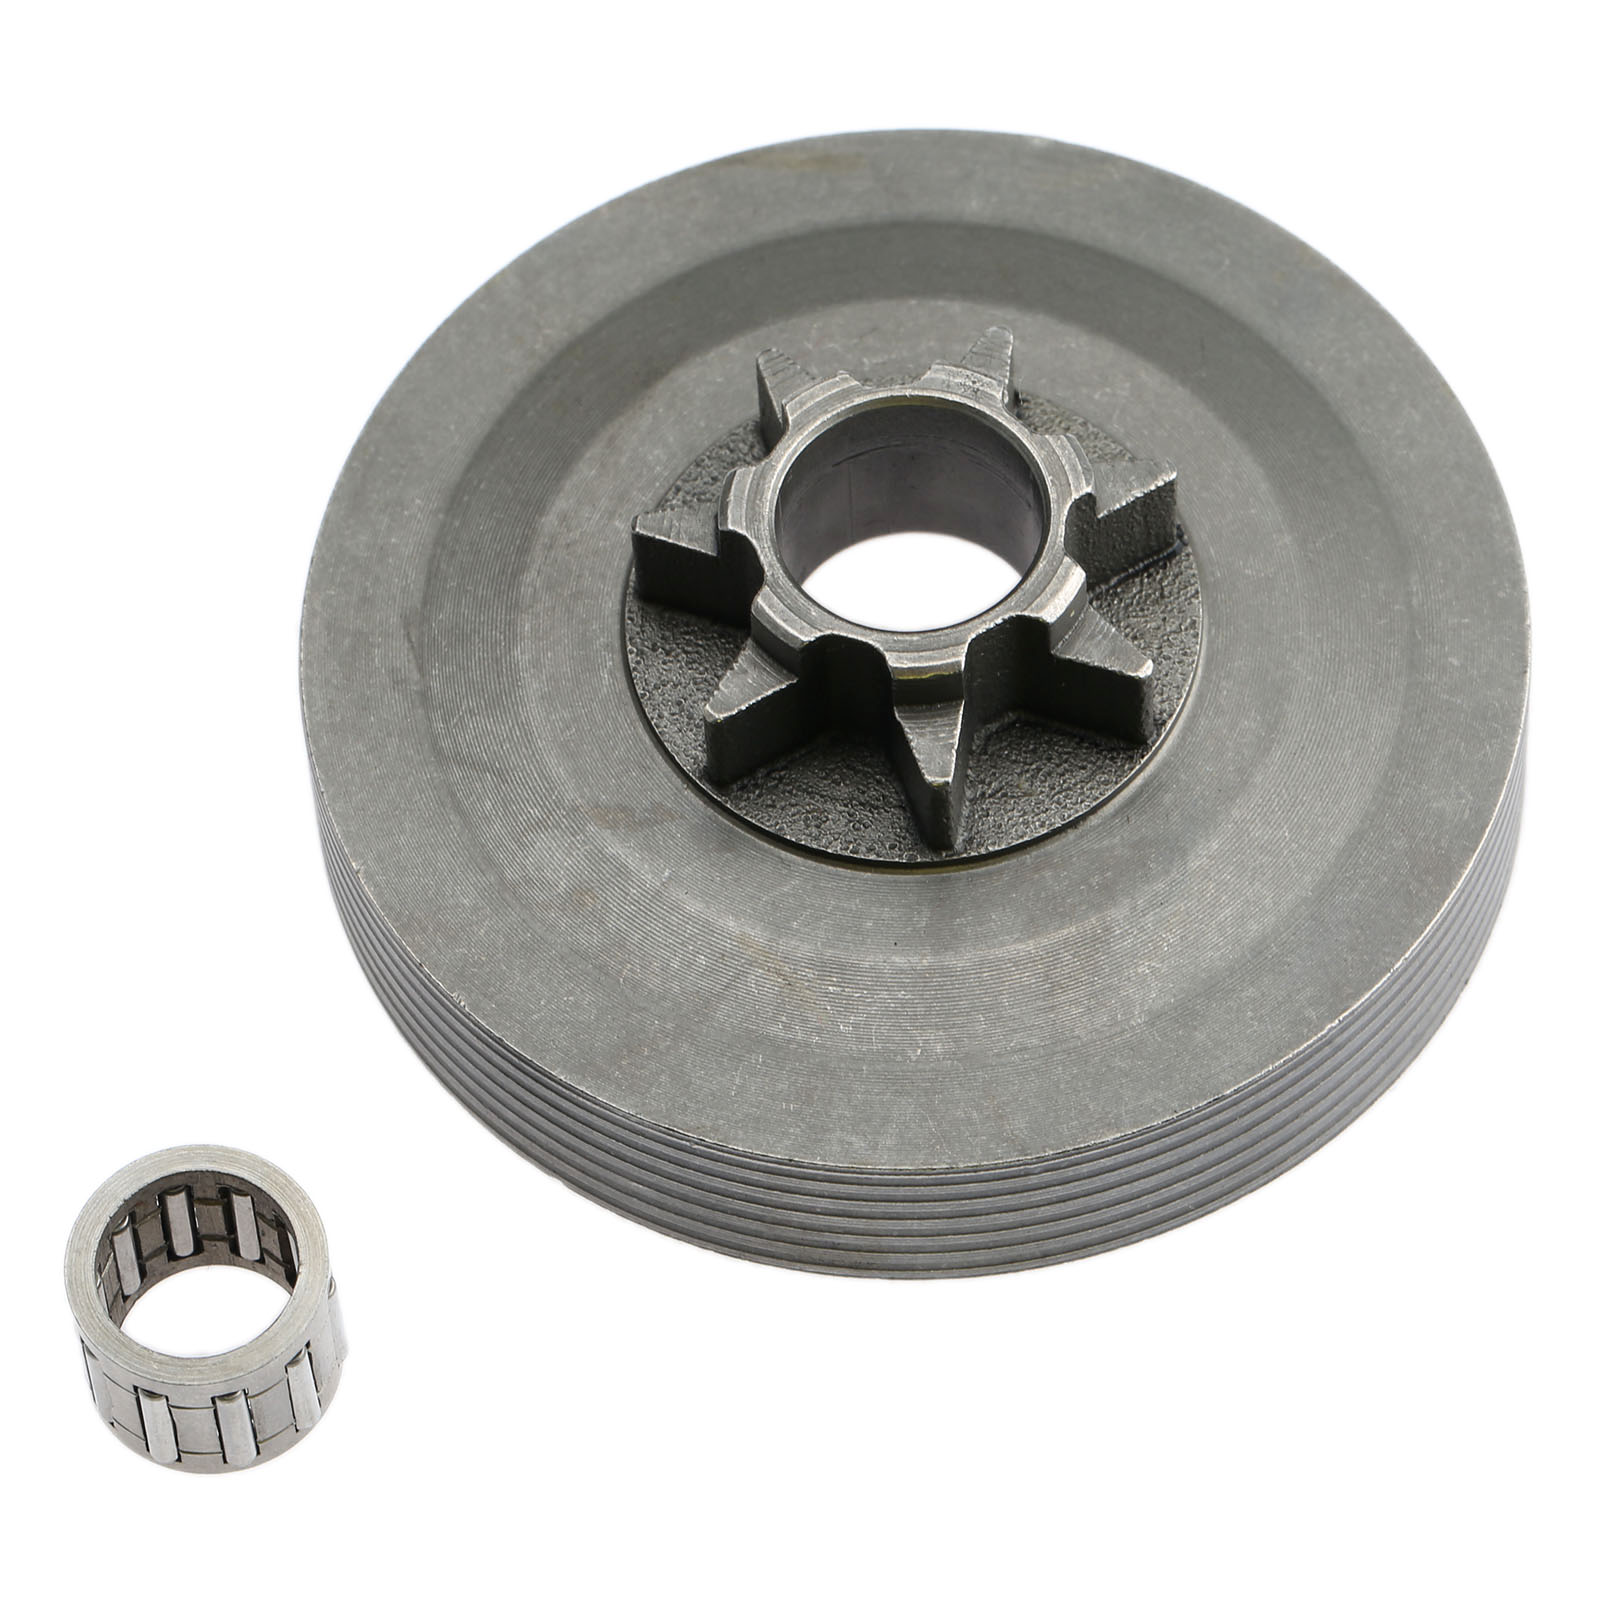 Steel Tool Parts 4500 5200 5800 Chainsaw Sprocket Rim Clutch Drum One Body W/Needle Bearing Set For 45CC 52CC 58CC Chainsaw Part